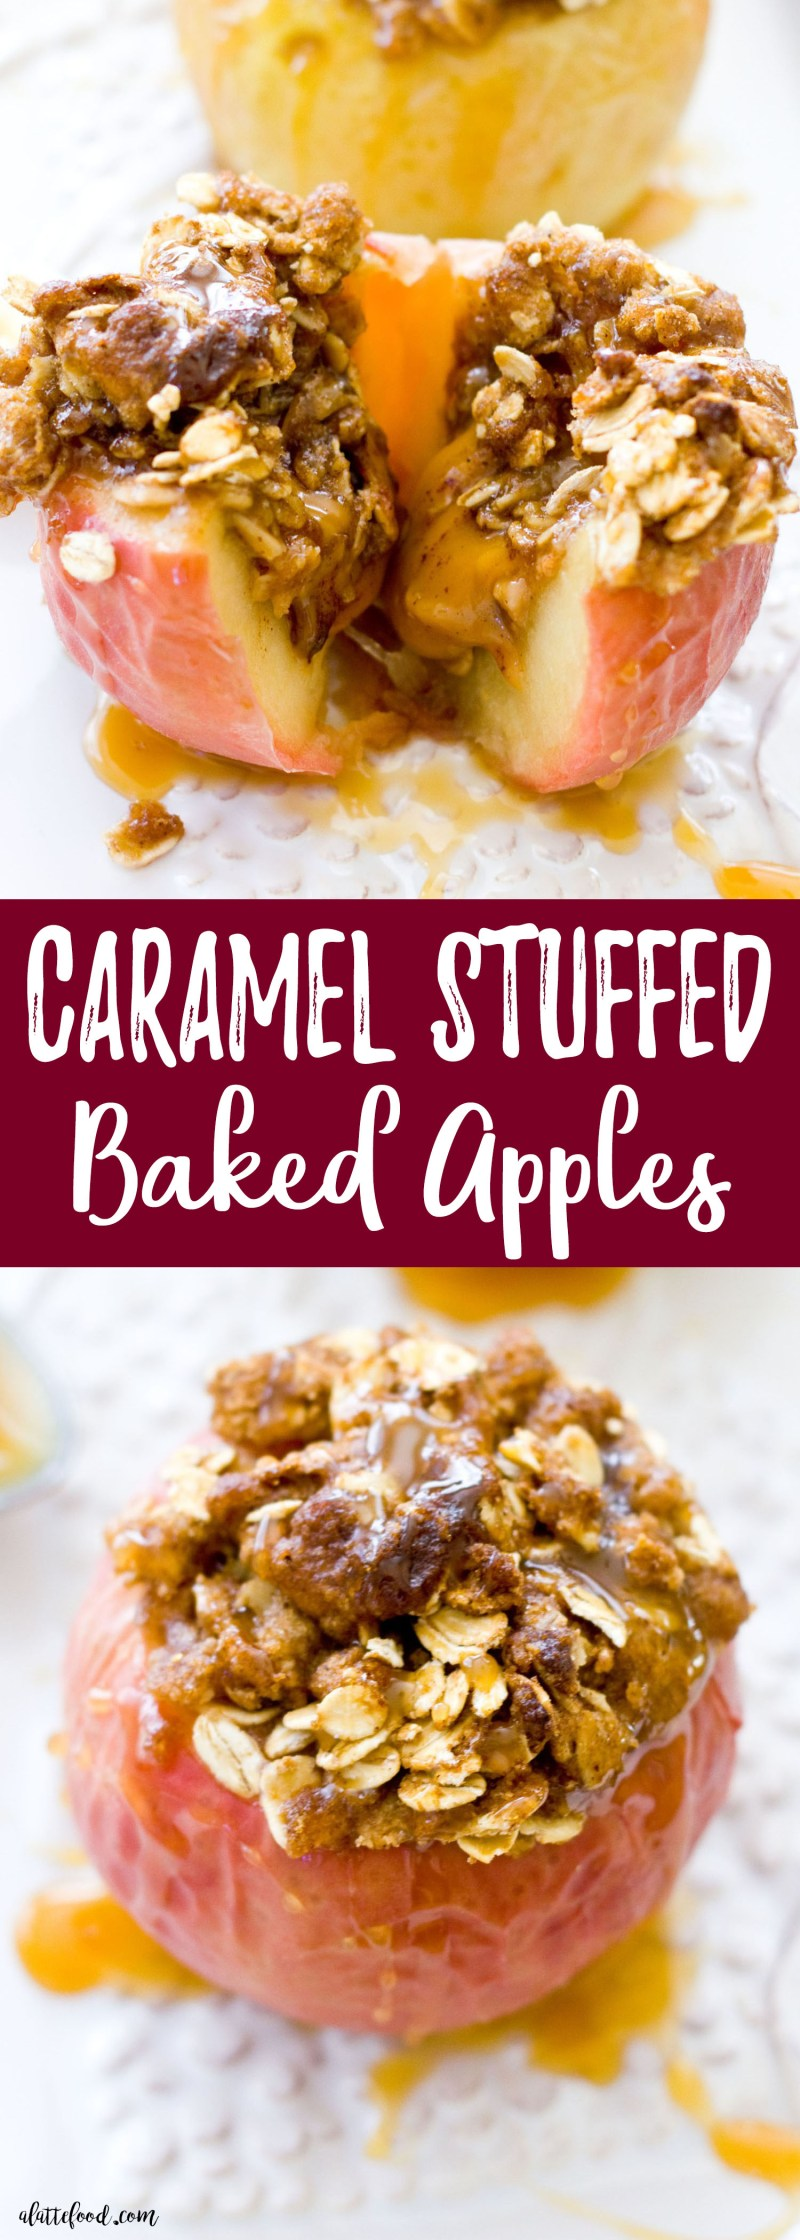 Caramel candies are stuffed inside of apples and baked 'til perfection. Topped with a Dutch apple and oat crust, this dessert is totally acceptable for breakfast (because there are apples and oats involved; it's practically oatmeal